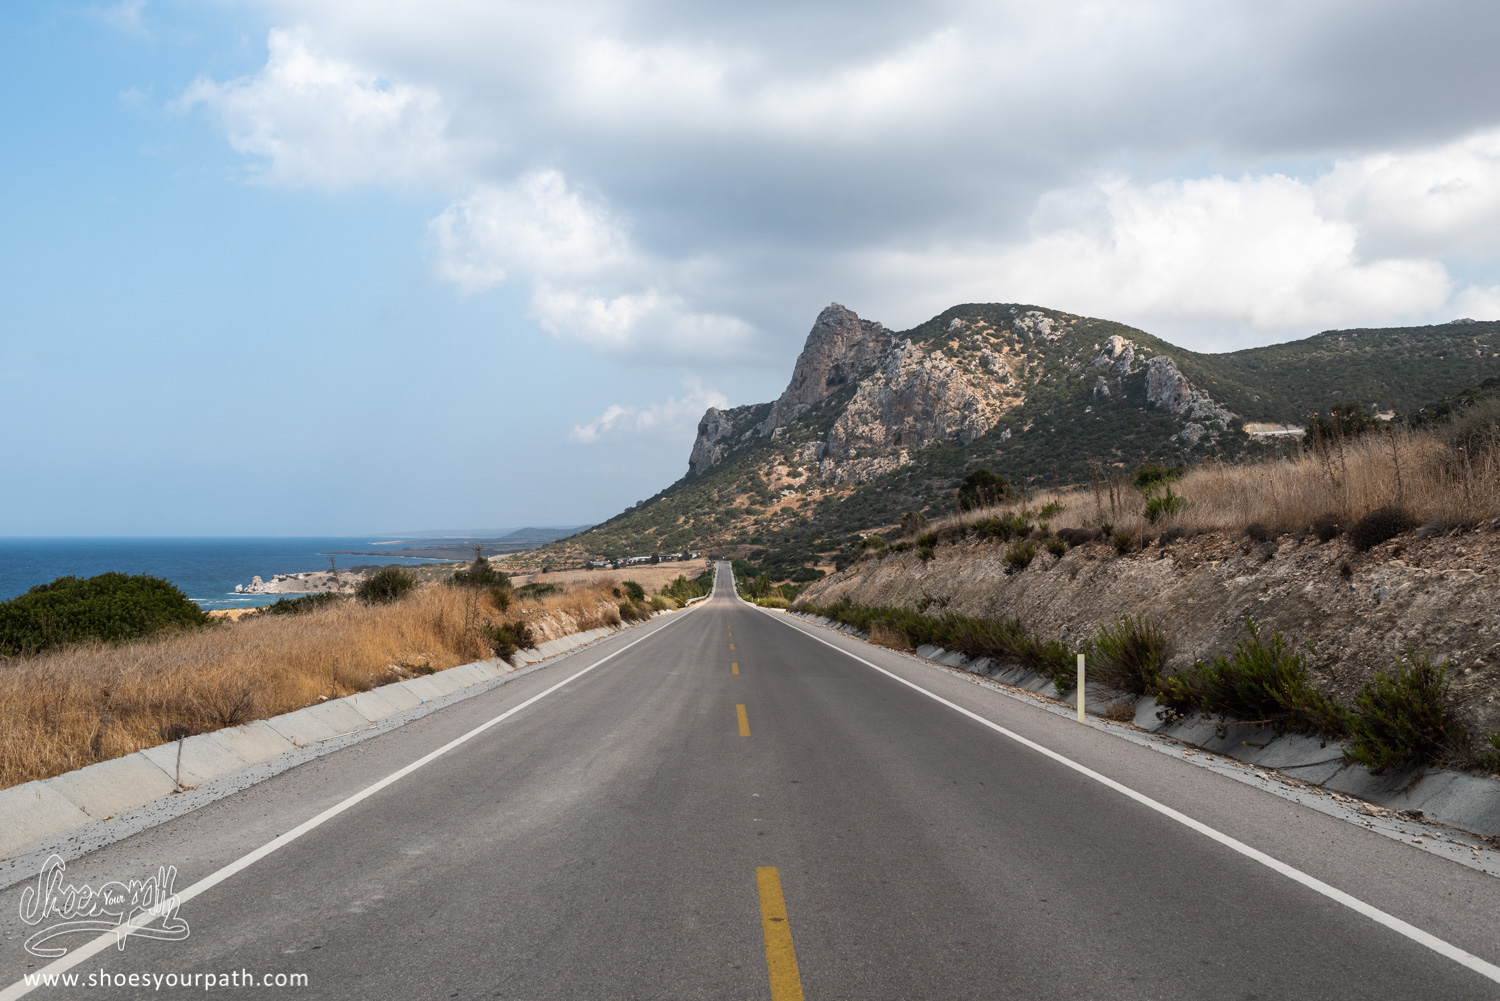 Alone. In the Karpas peninsula. North Cyprus.